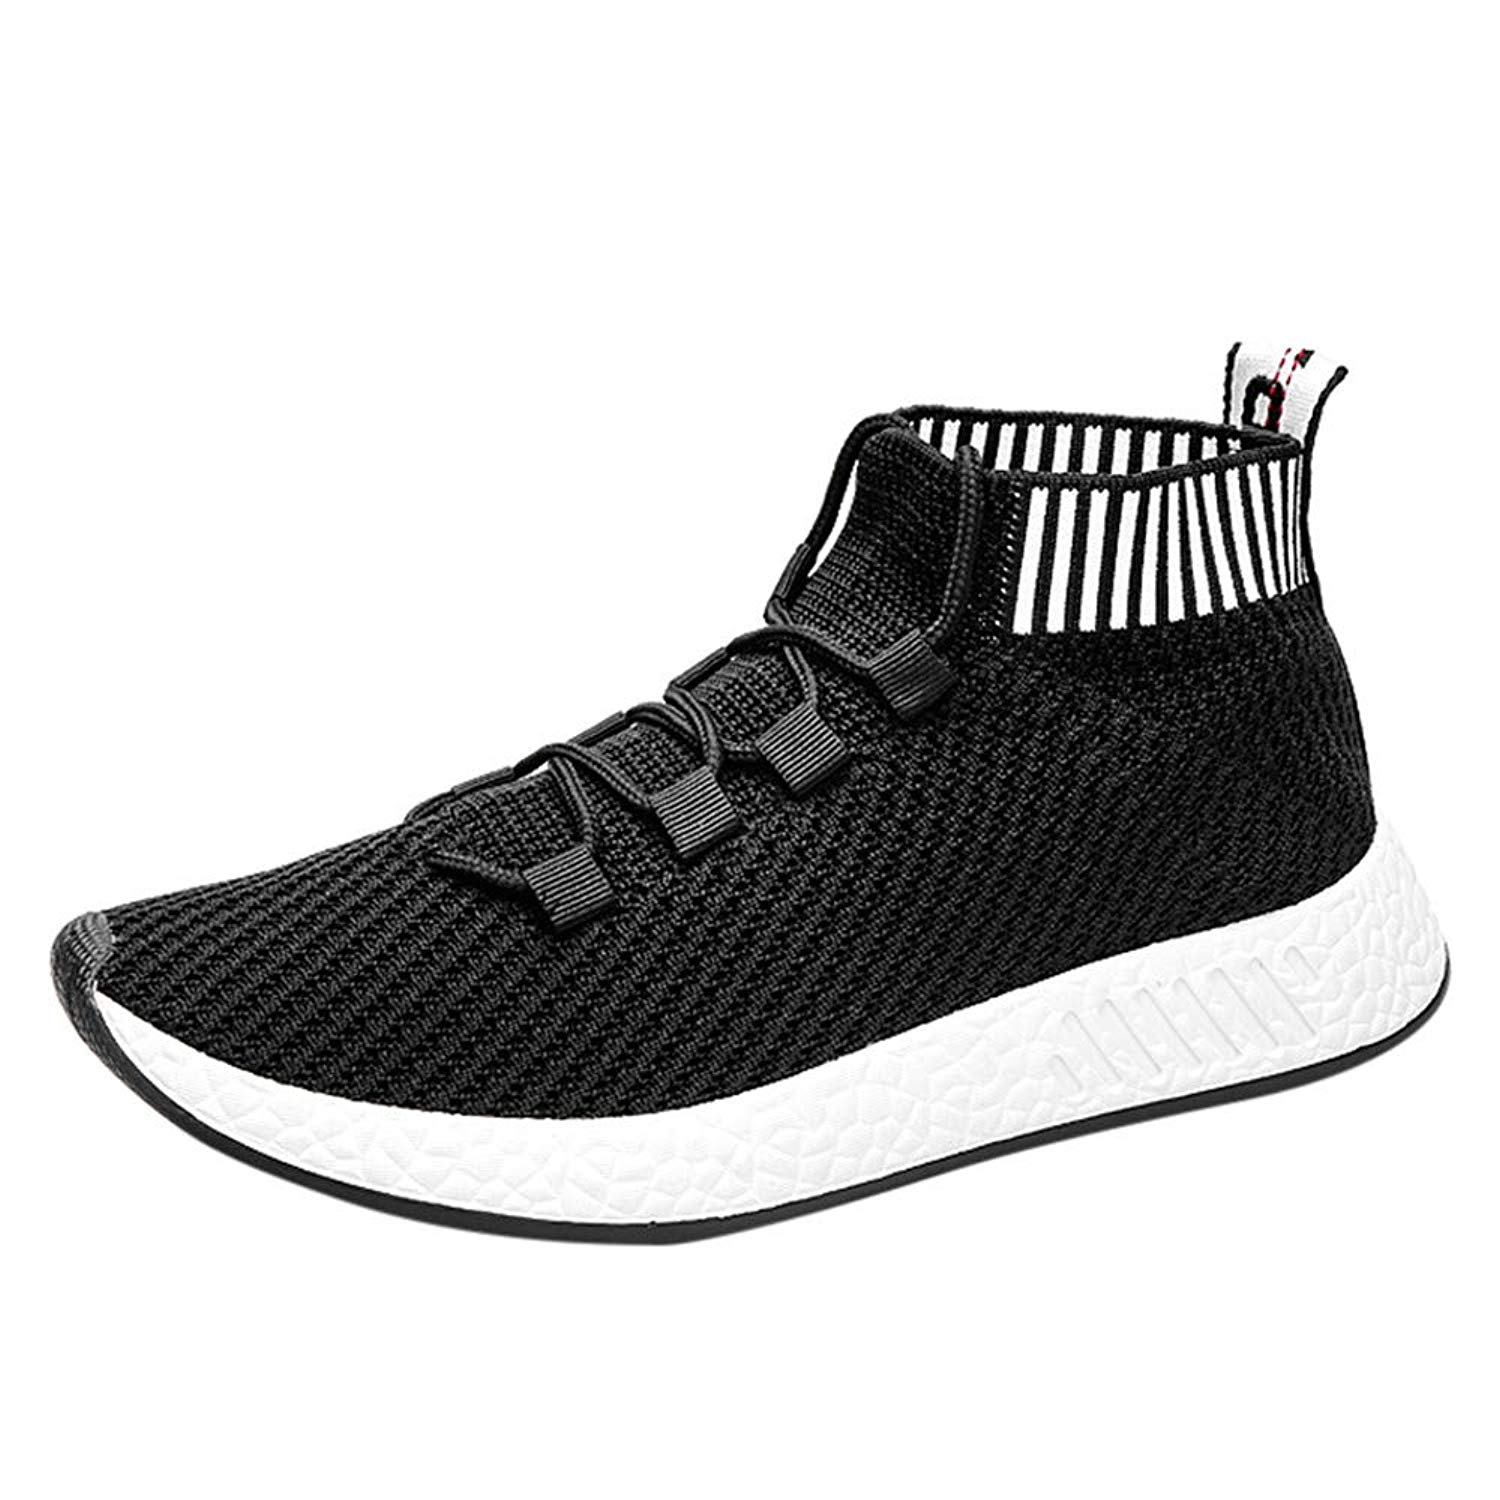 Sneakers for Men,Clearance Sale! Caopixx Men's Trail Mesh Running Shoes Athletic Casual Lightweight for Sport Sneaker